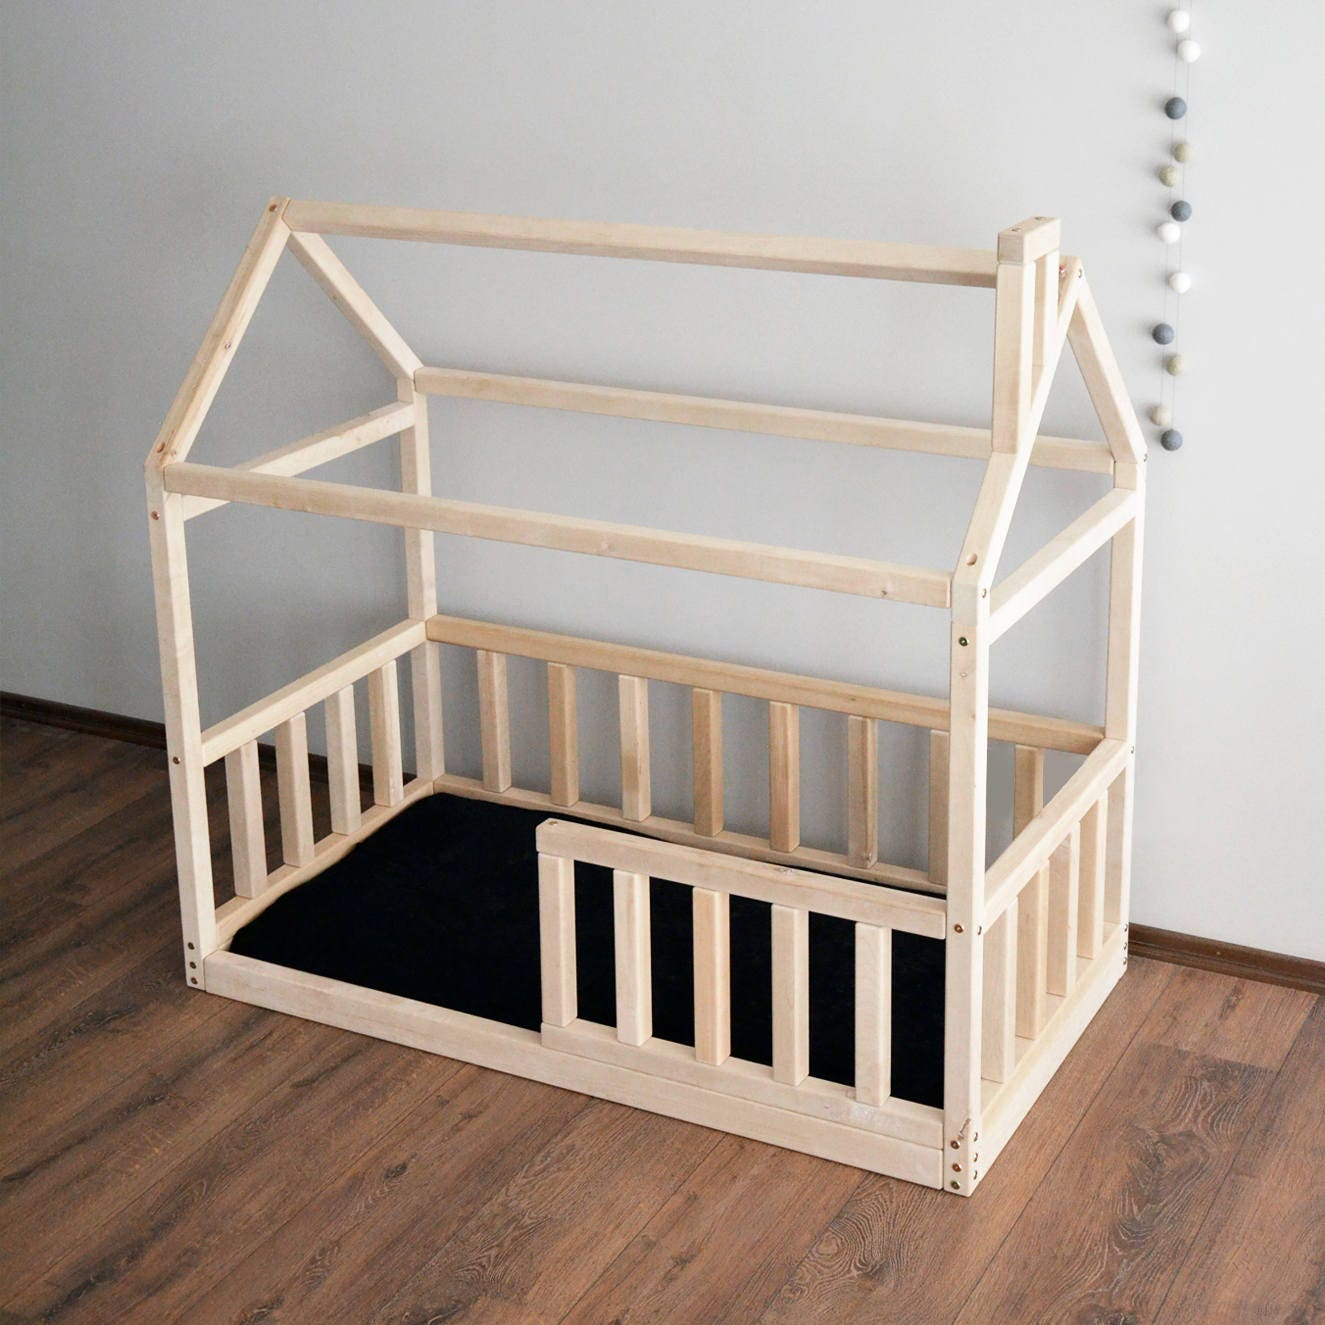 House bed frame toddler bed montessori baby bed crib size for Frame house bed